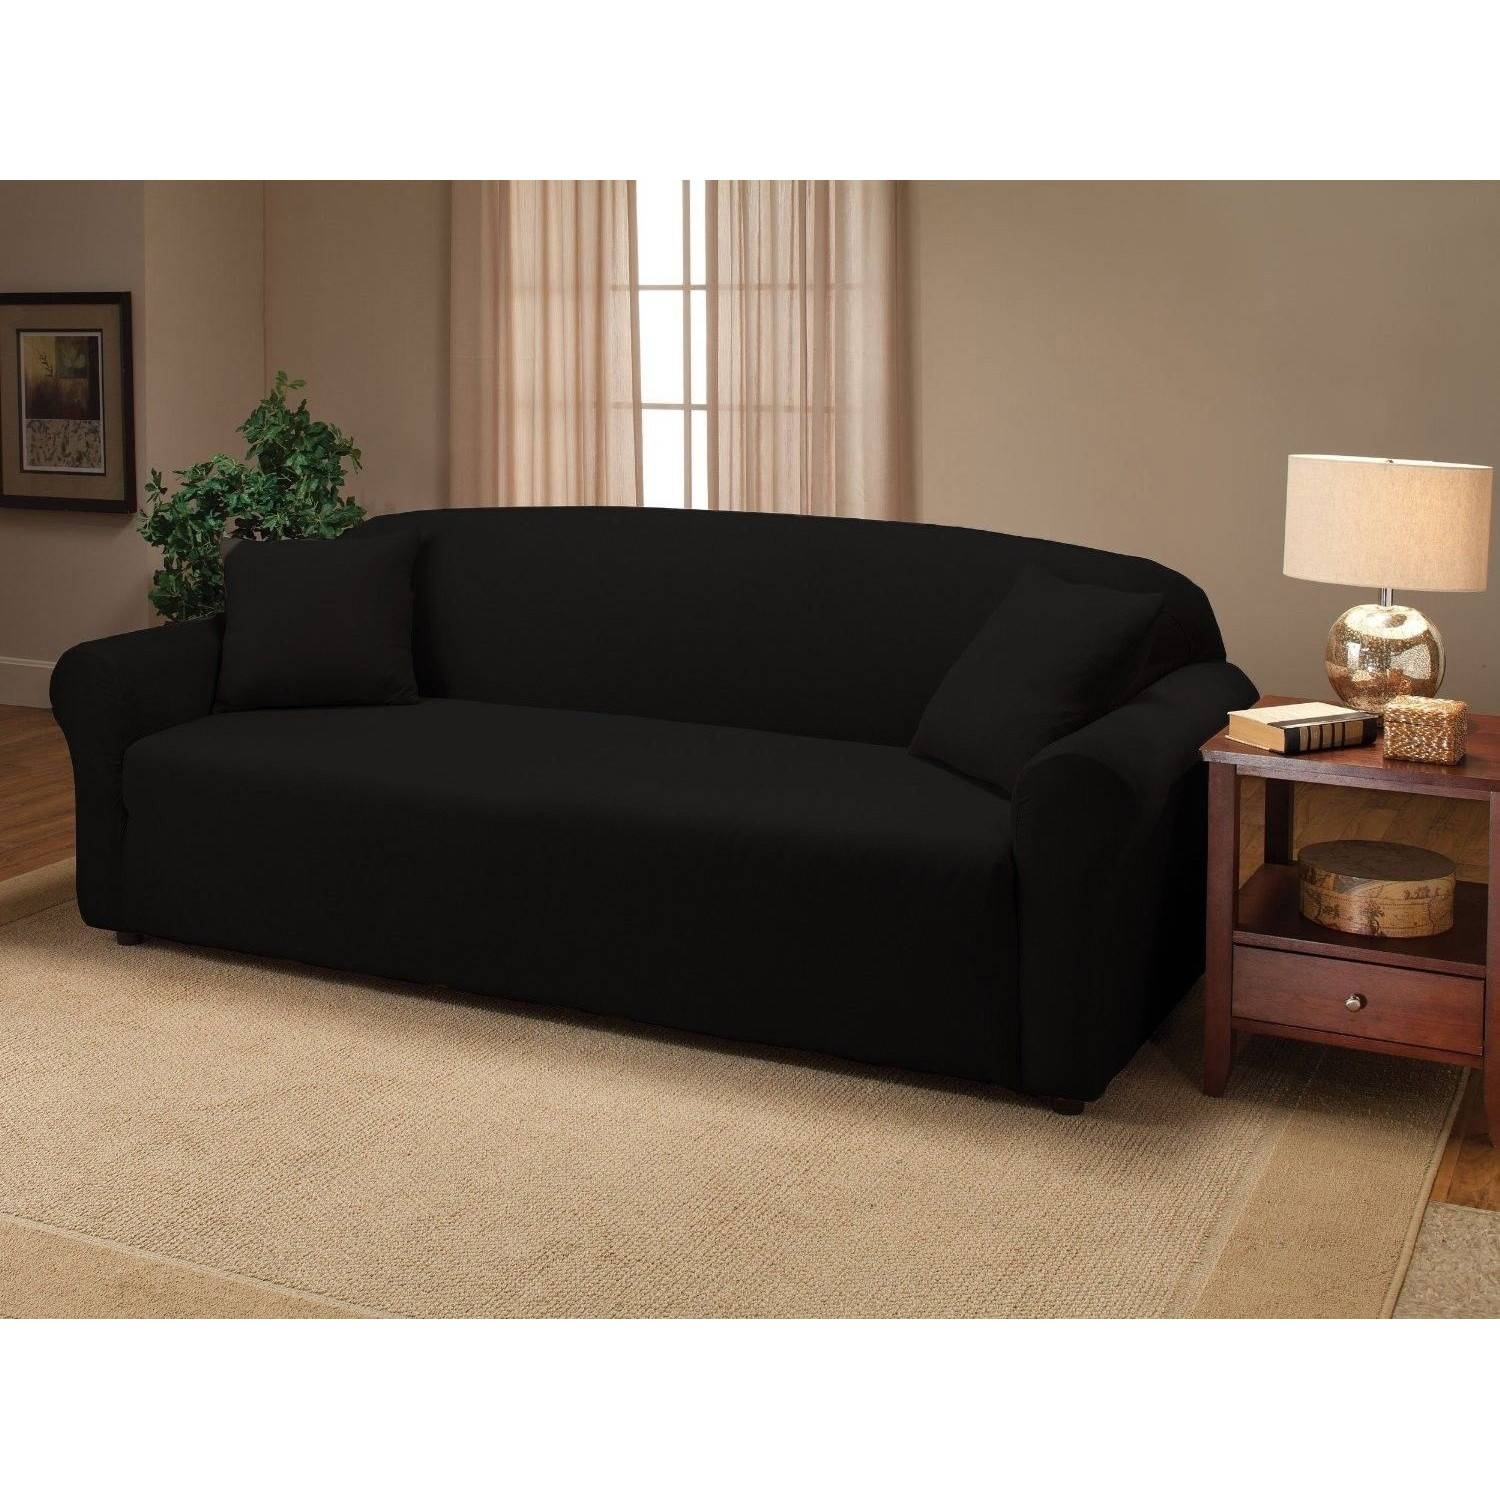 Decor: Futon Covers | Target Couch Slipcovers | Target Slipcovers with Black Slipcovers for Sofas (Image 6 of 30)